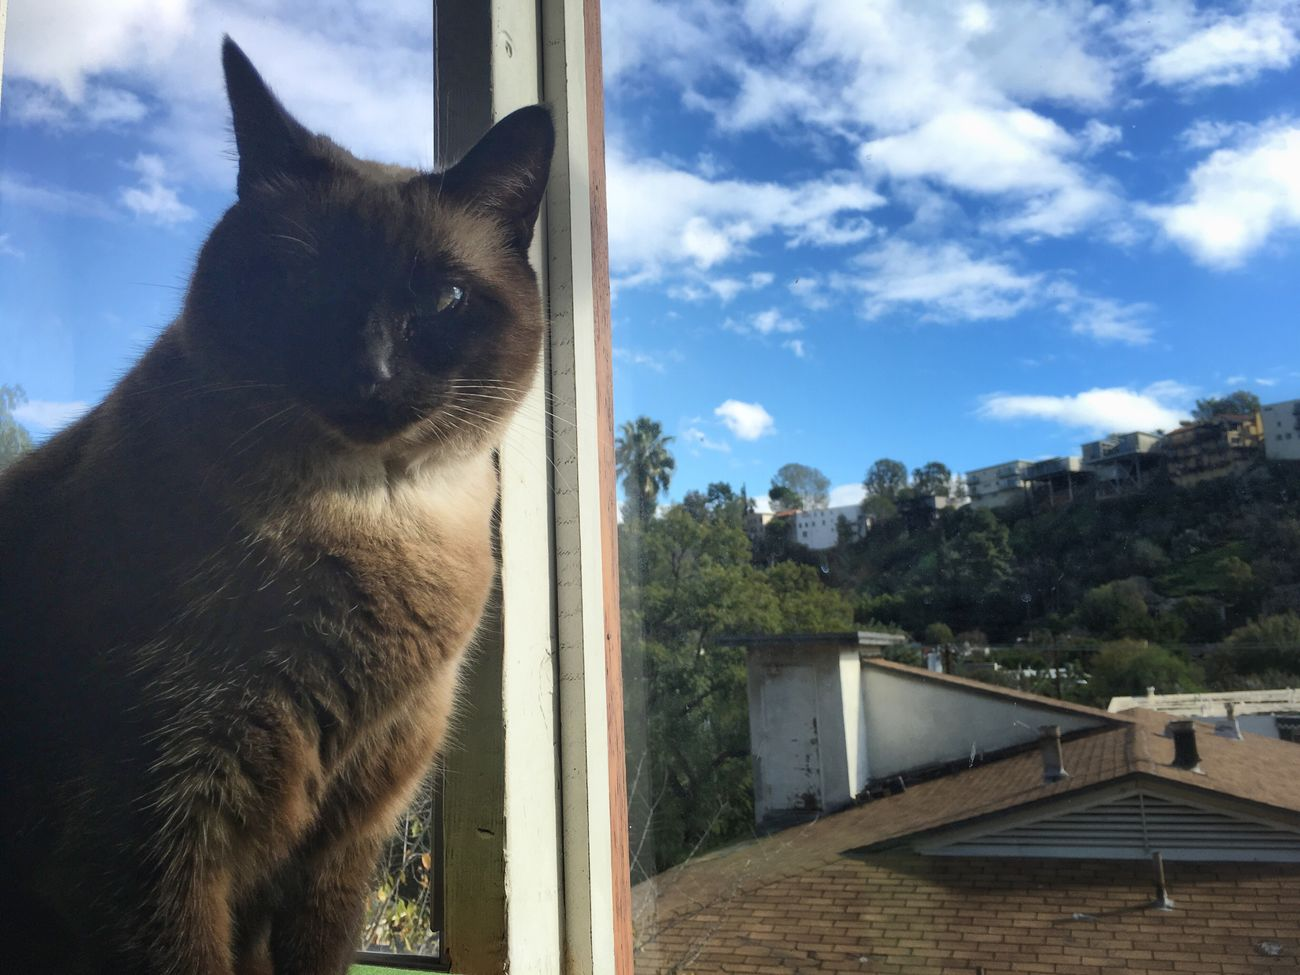 Domestic Cat Domestic Animals Pets One Animal Sky Feline Building Exterior Window No People Cat Day Tree Indoors  Nature Architecture Siamese Cat California Canyon Palm Tree Blue Sky Tranquility Mammal Close-up Animal Themes Los Angeles, California